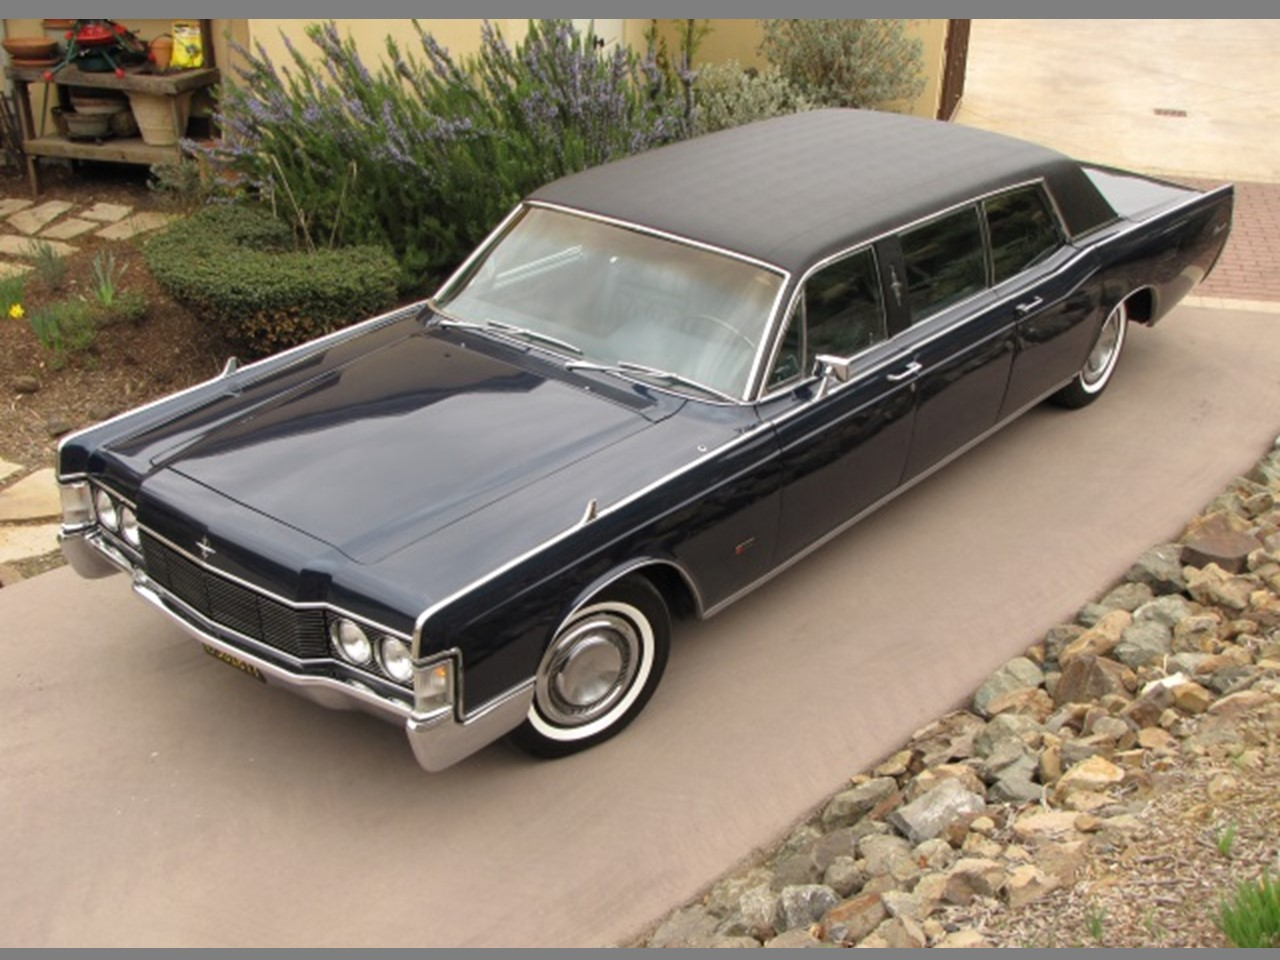 1968 continental executive limousine by lehmann peterson notoriousluxury. Black Bedroom Furniture Sets. Home Design Ideas